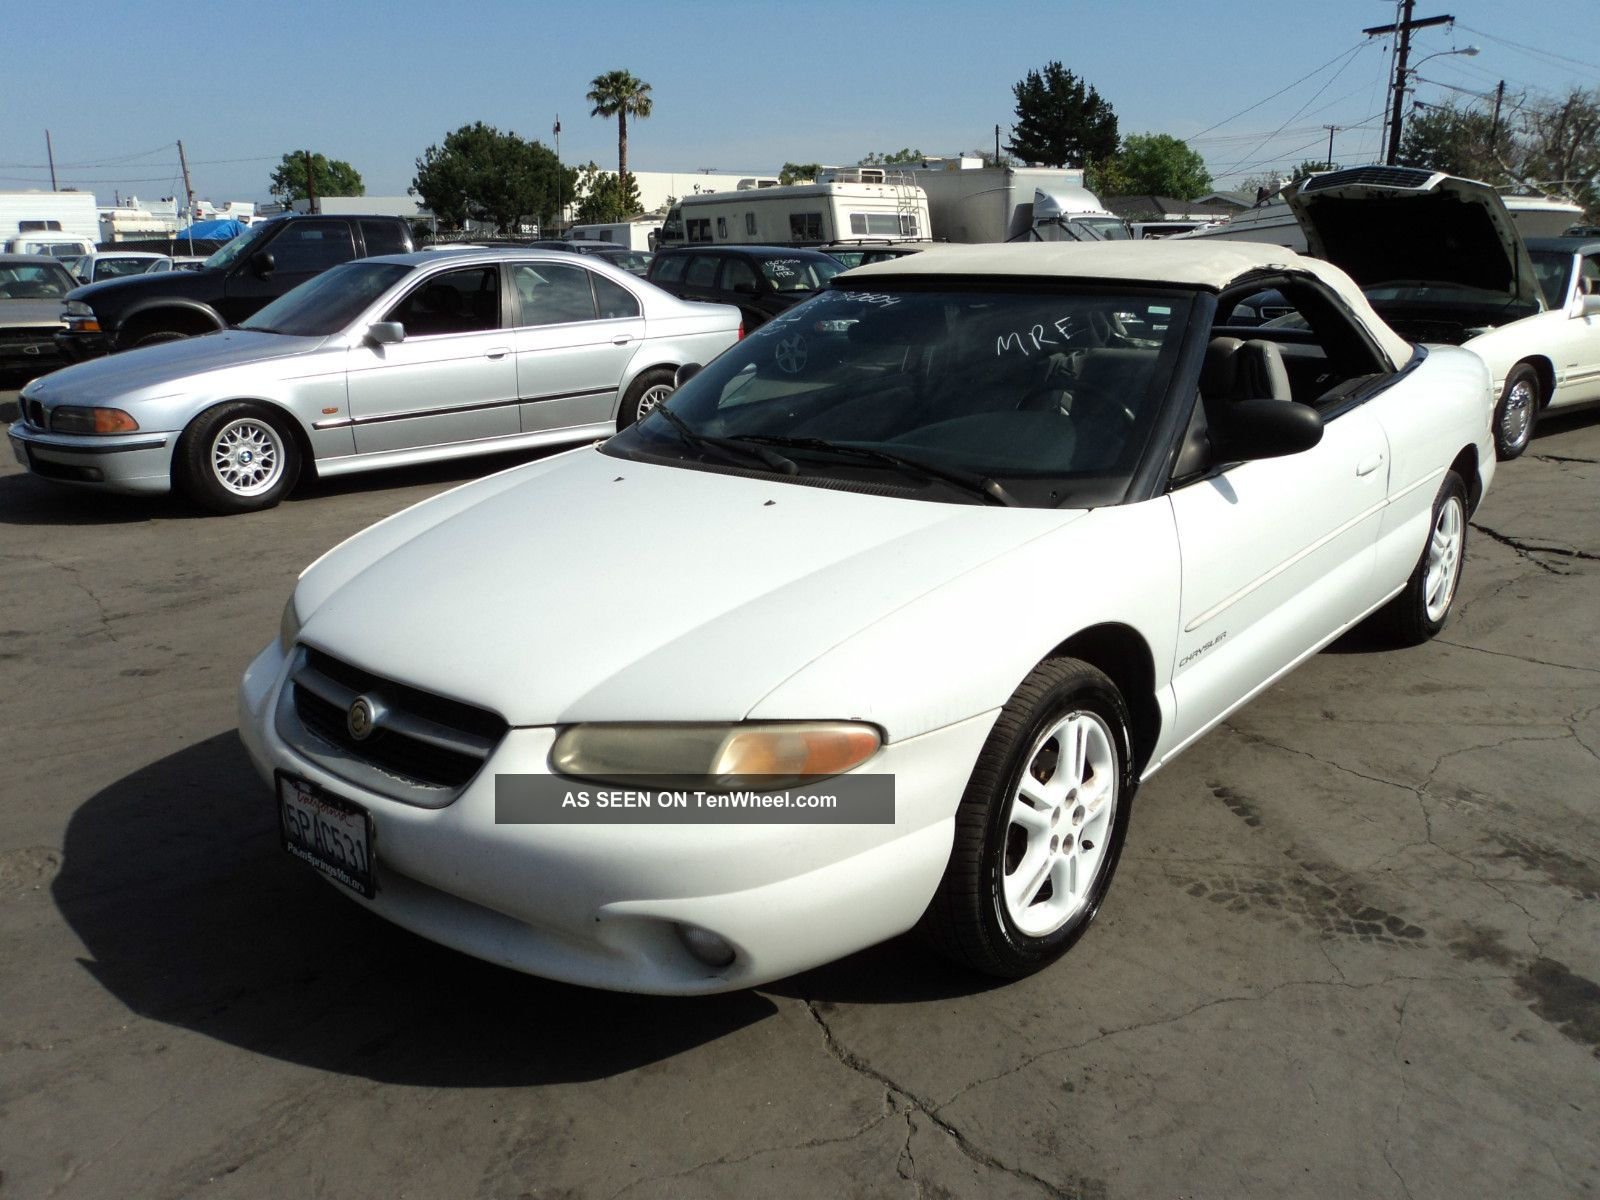 1997 chrysler sebring jxi convertible 2 door 2 5l. Cars Review. Best American Auto & Cars Review